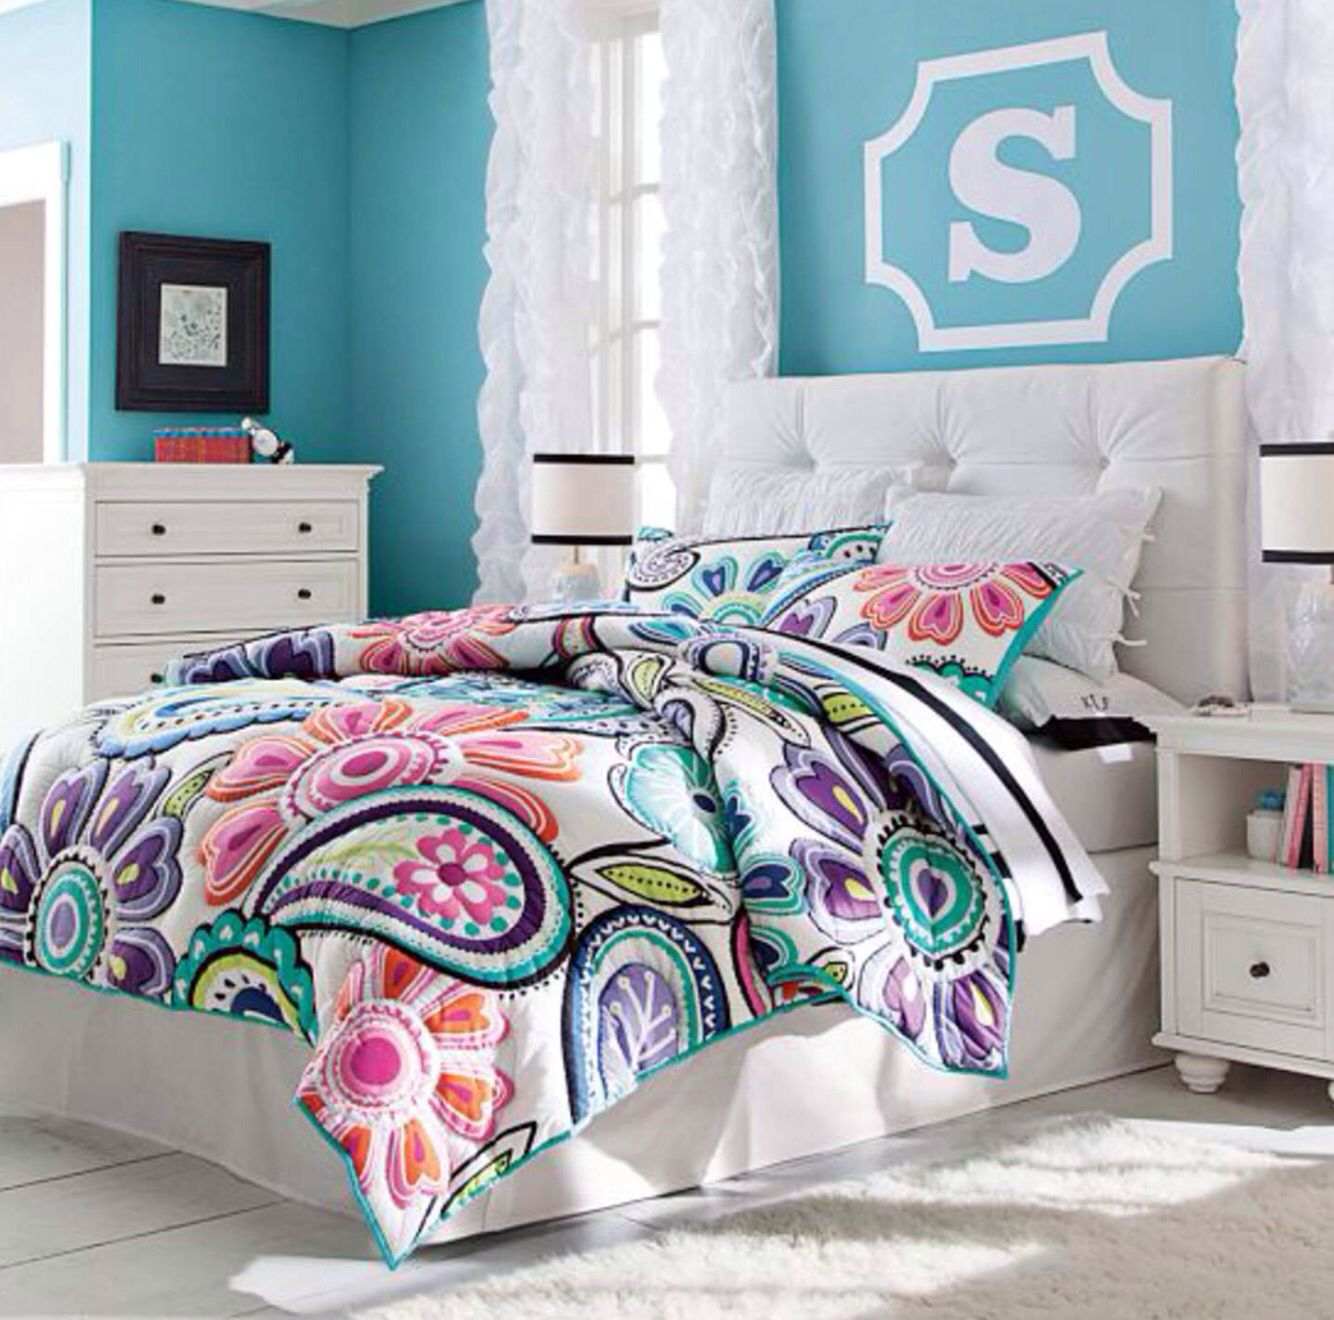 Pb teen girls bedroom girls bedroom pinterest for Bed rooms for girls